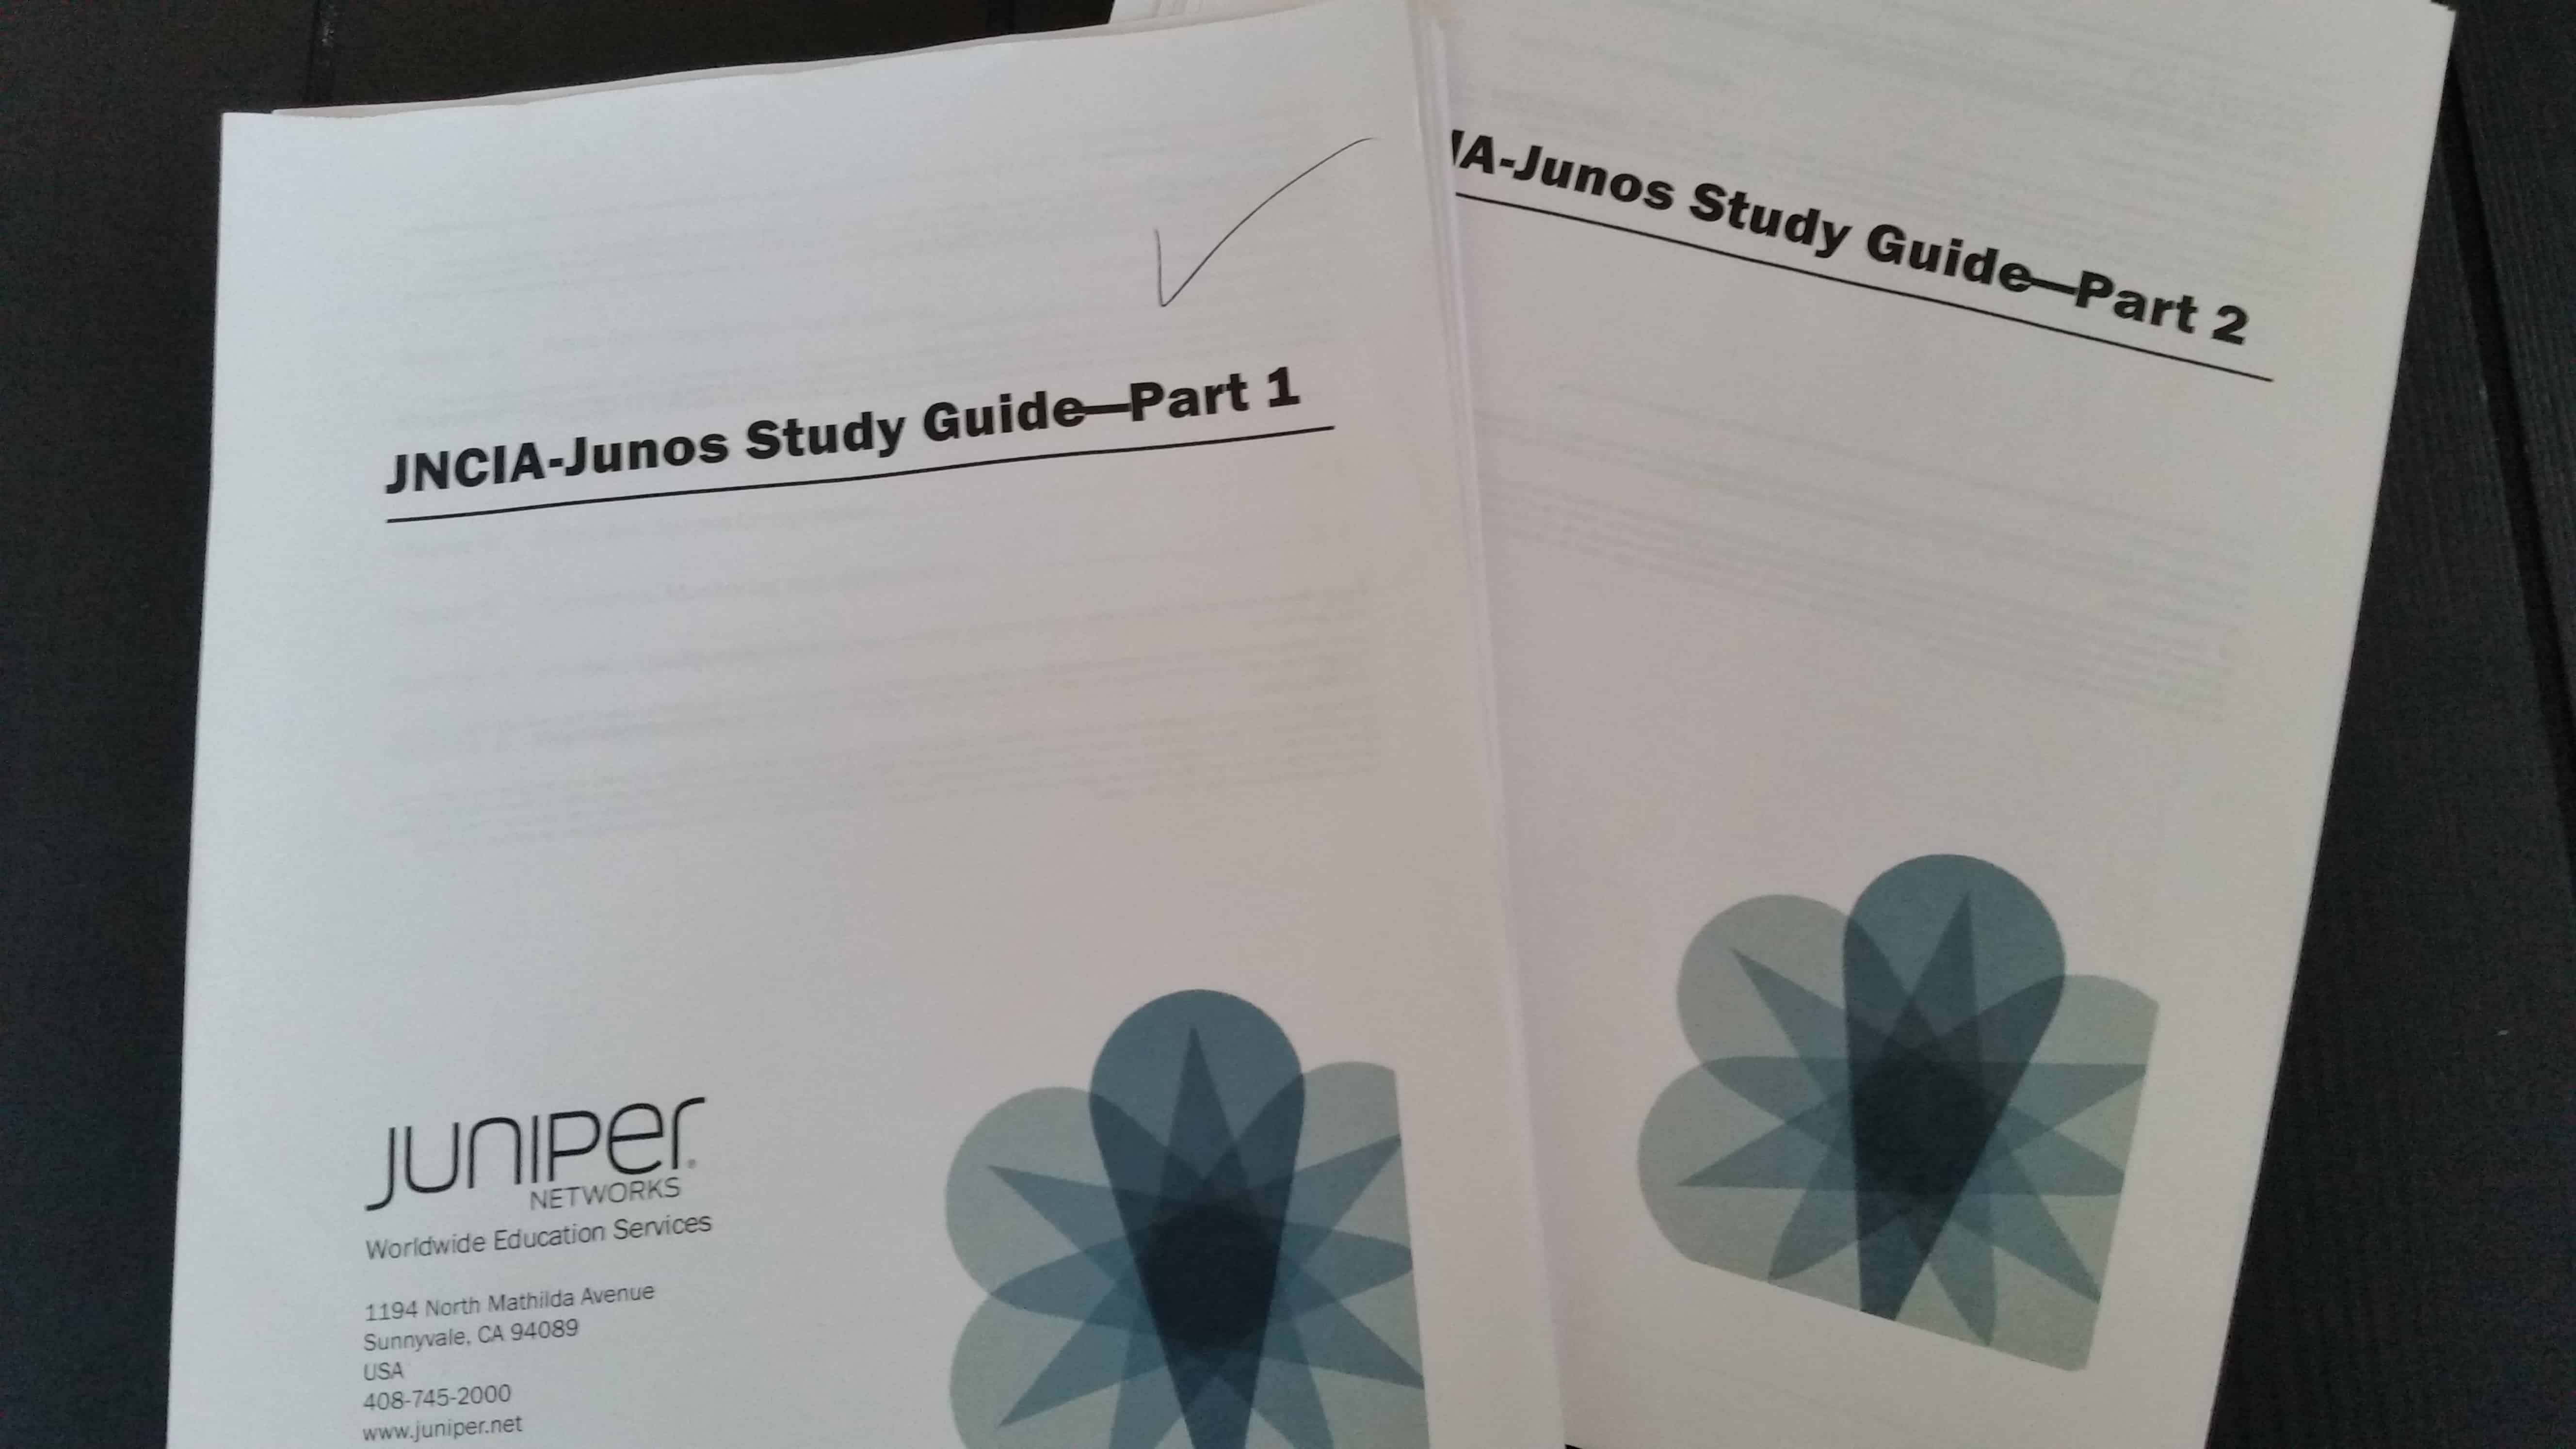 Juniper Tips from the JNCIA-Junos Study Guides